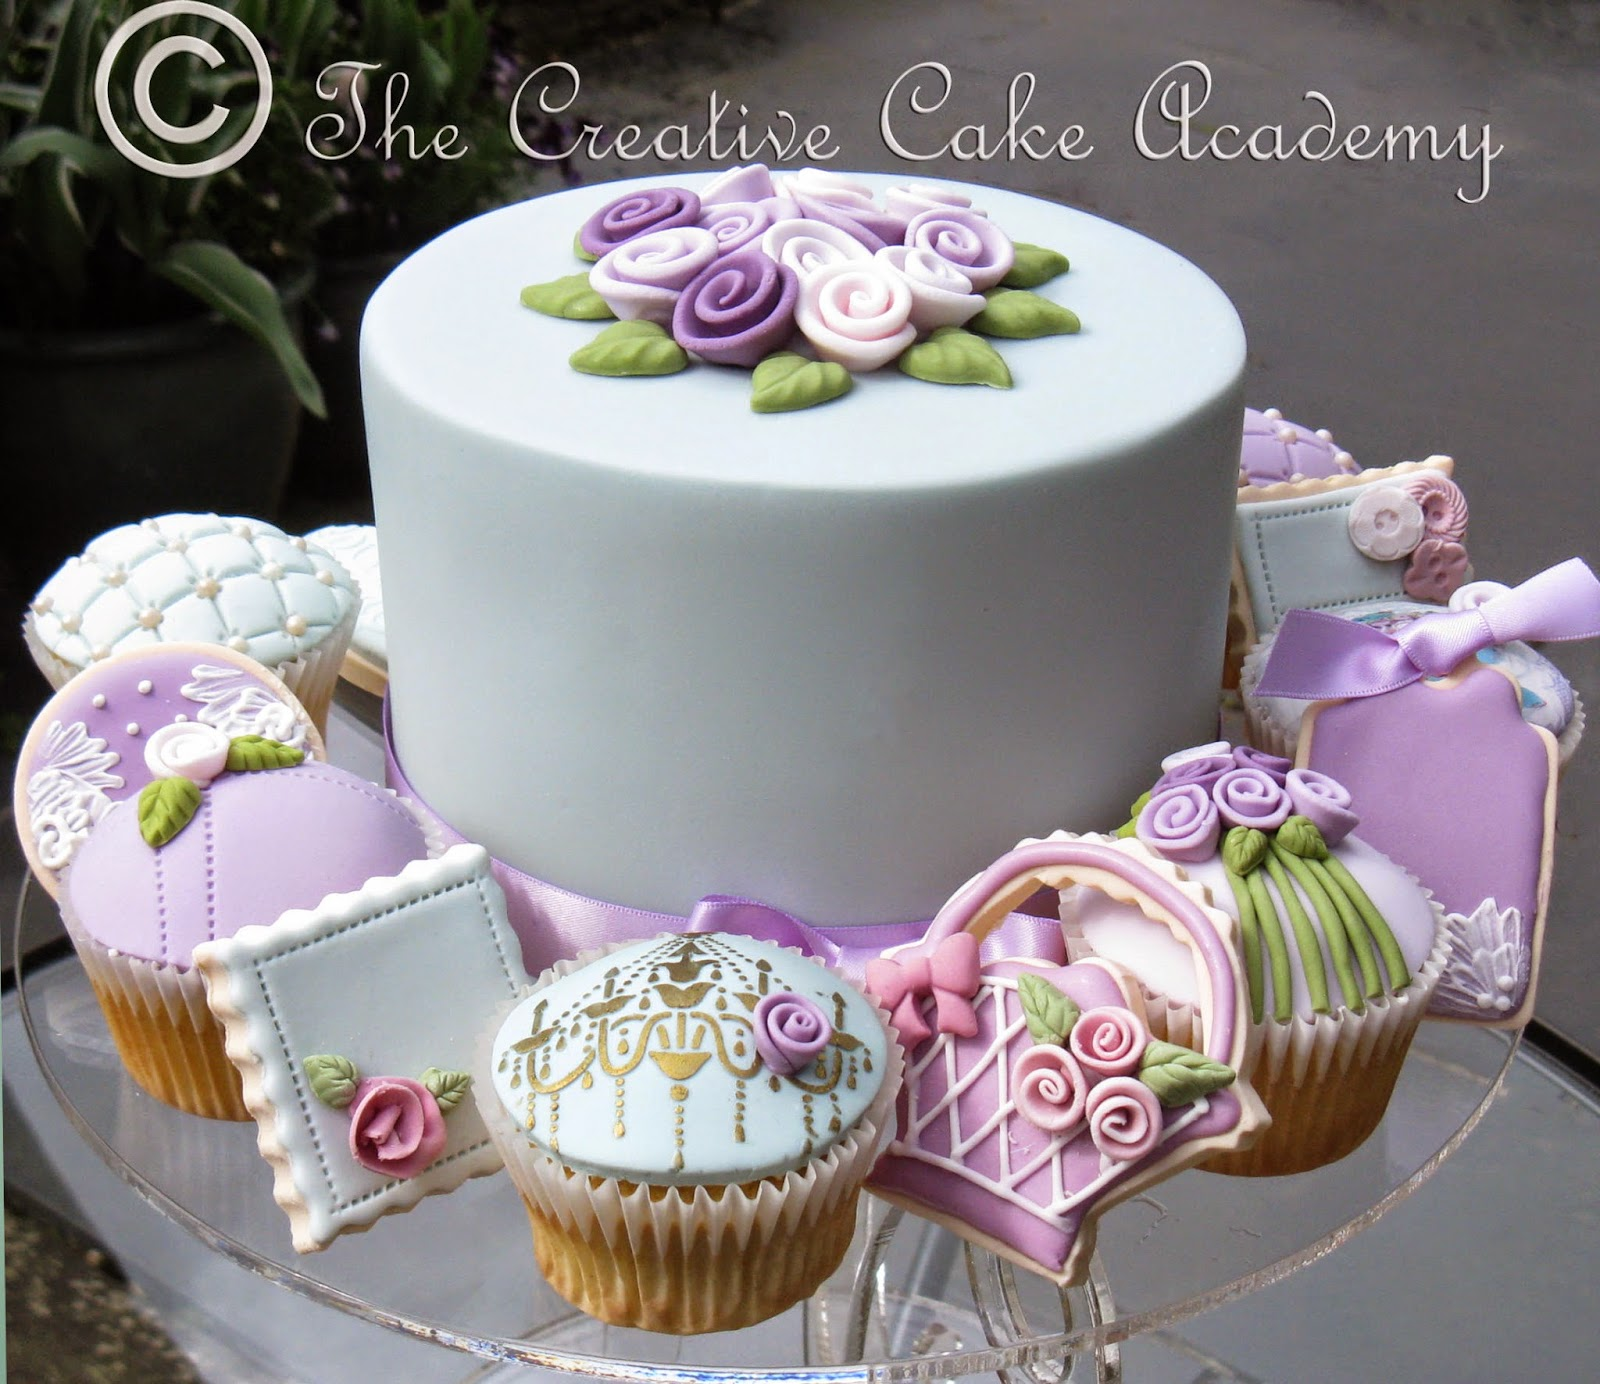 We Have A Wonderful Range Of Works To Suit Students At All Levels Show You How Create The Most Beautiful And Stylish Celebration Cakes